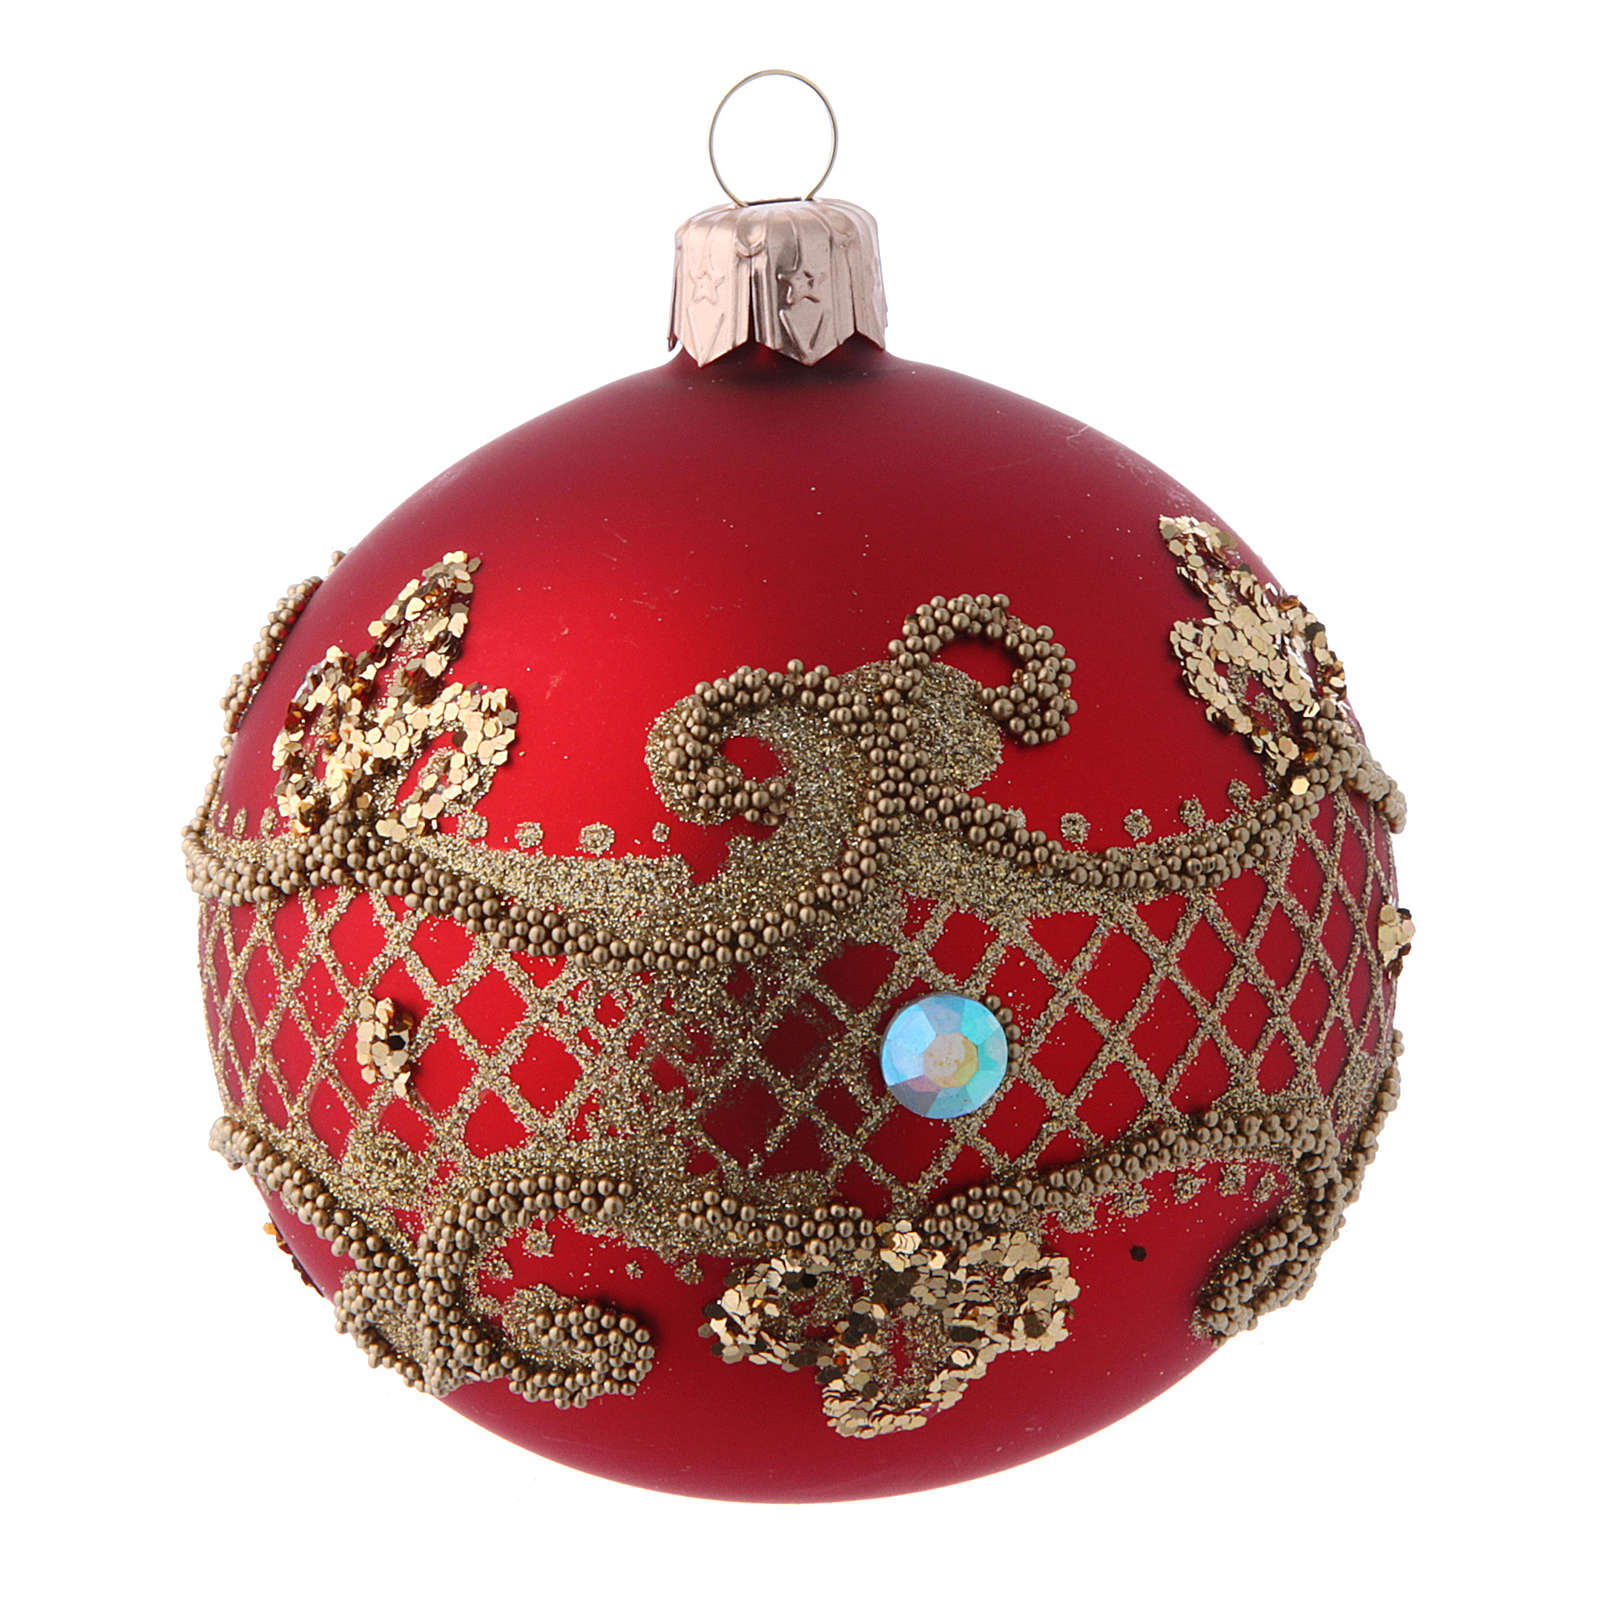 Christmas bauble red glass 80 mm set of 9 pieces assorted decorations 4